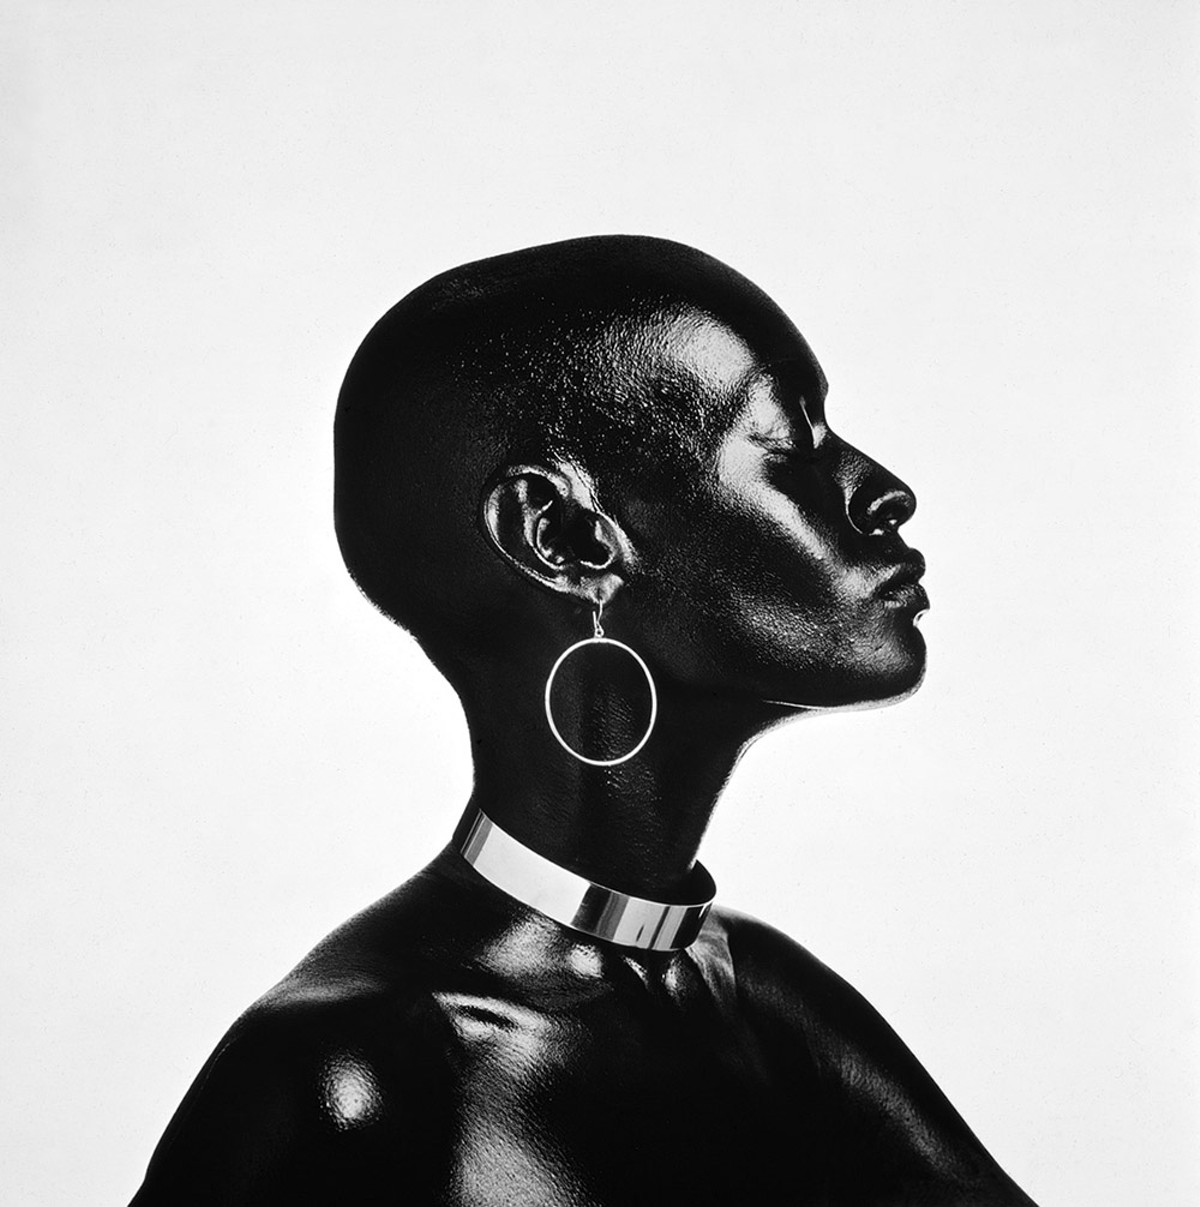 photo of Pat Evans by Anthony Barboza, from 'Posing Beauty'